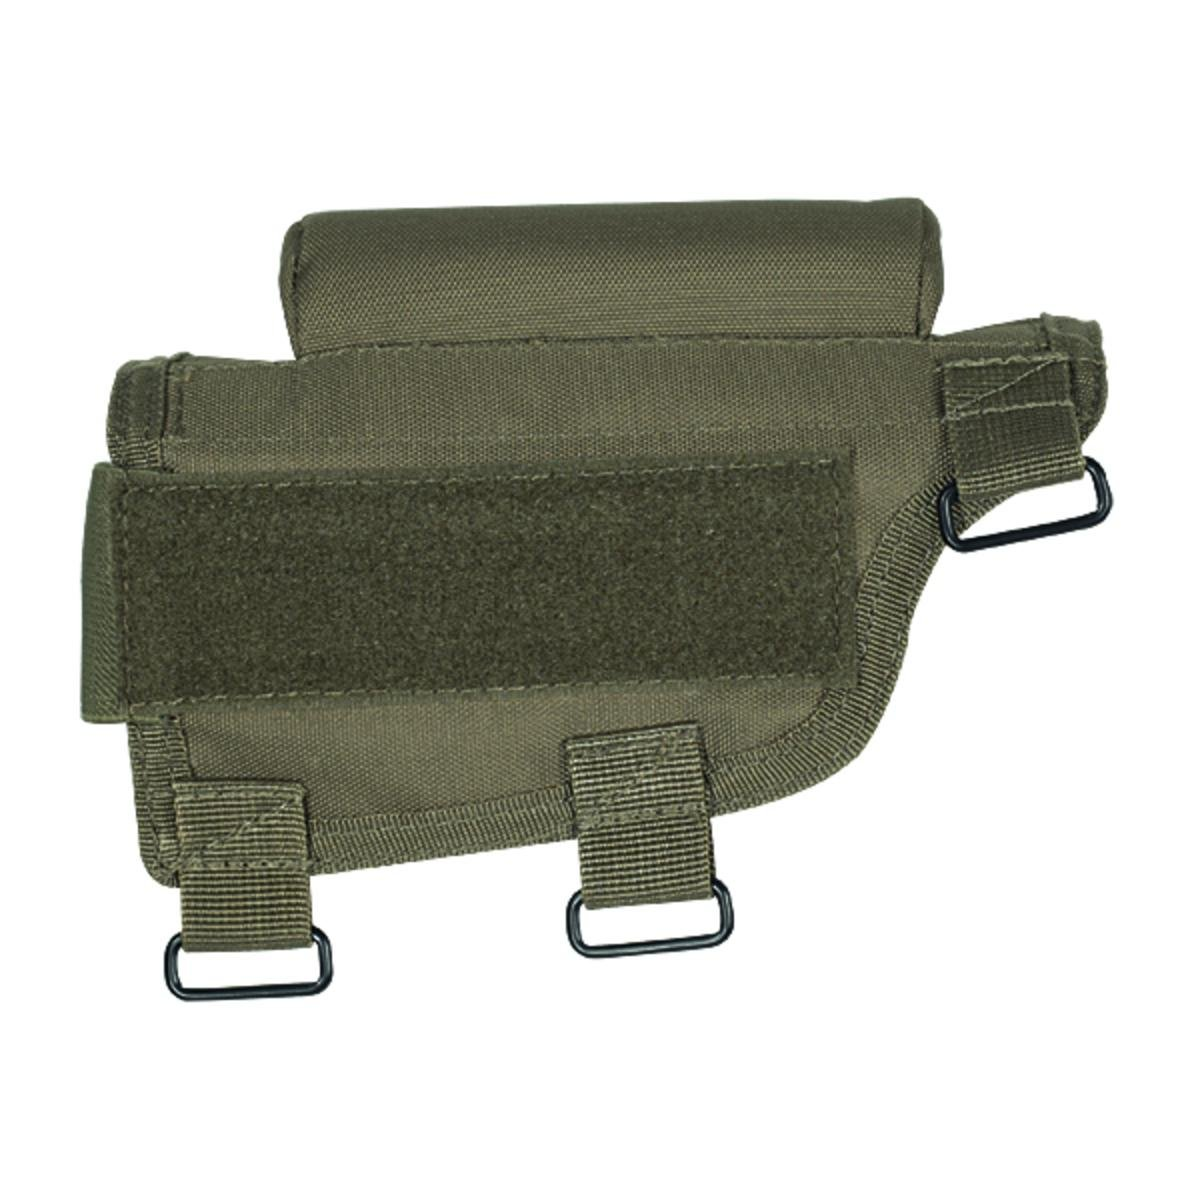 VooDoo Tactical 20-9421004000 Buttstock Cheek Piece With Ammo Carrier, OD